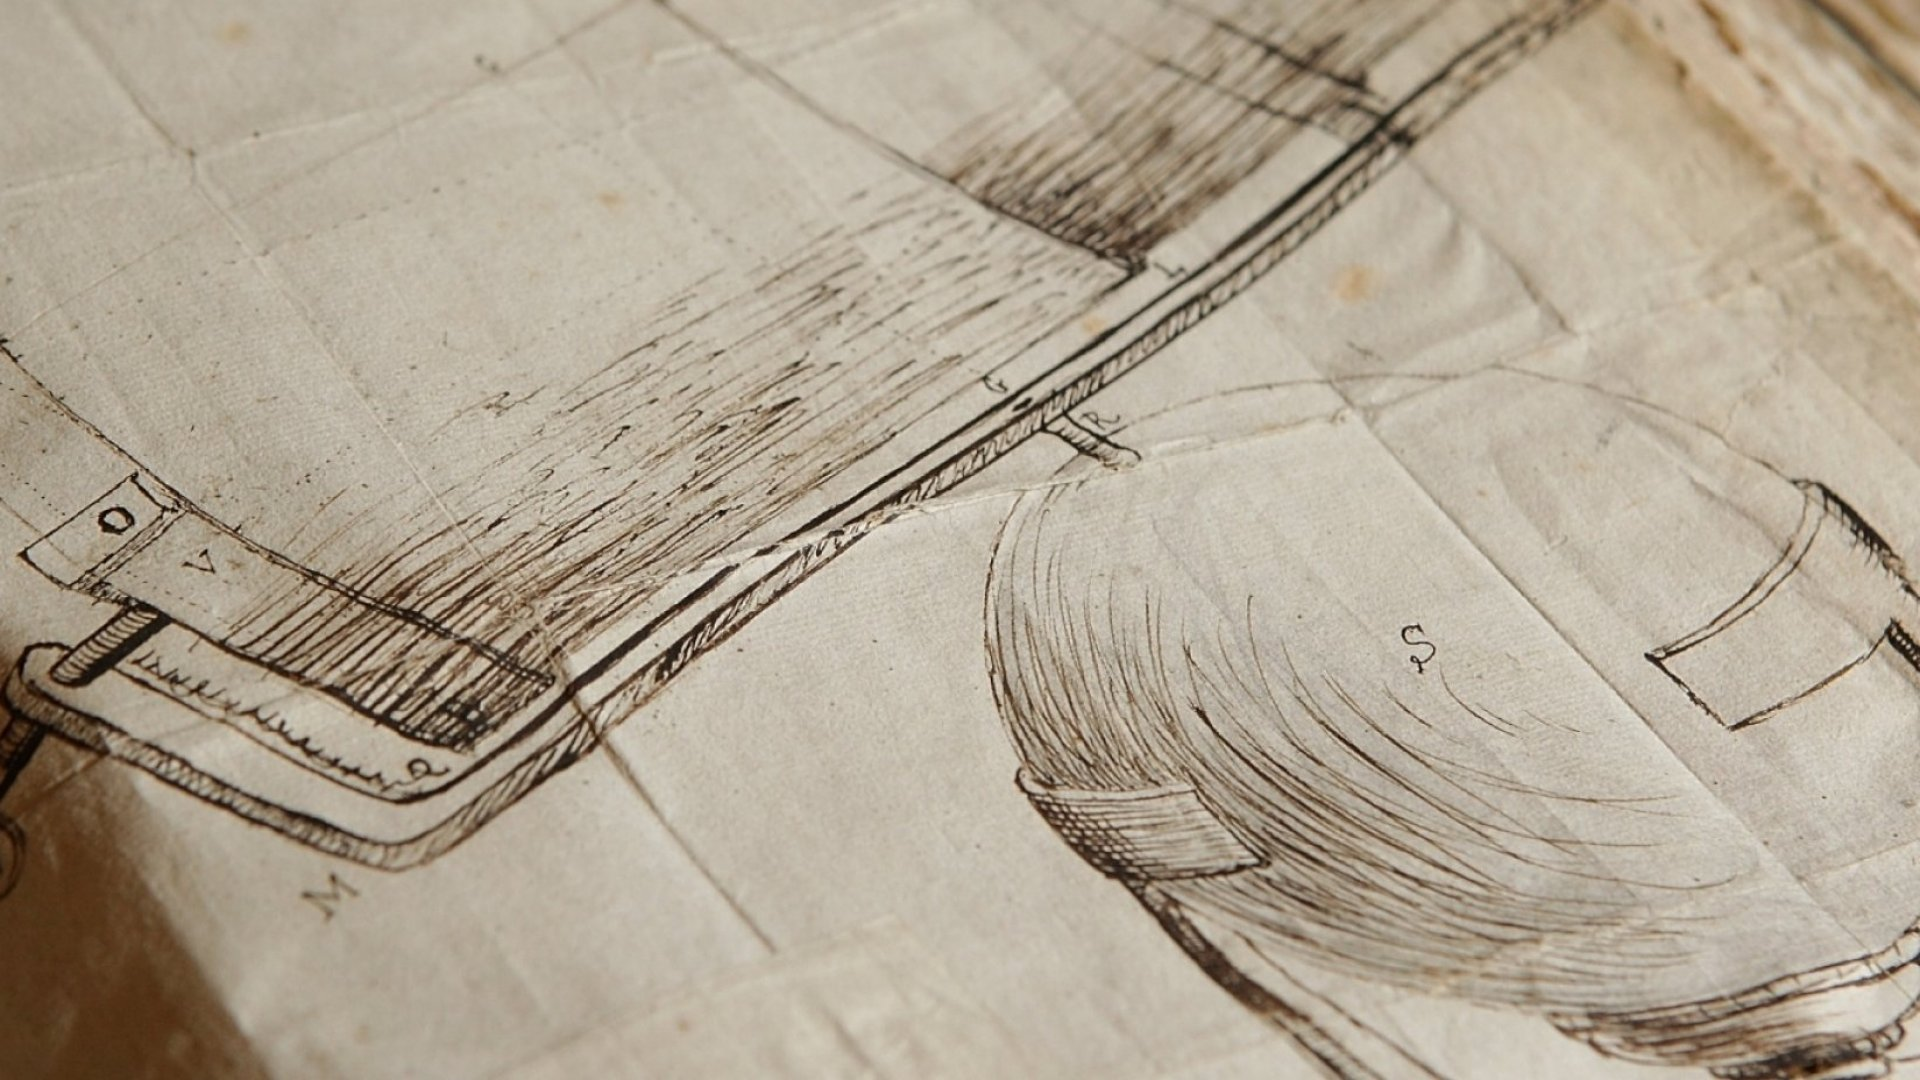 A drawing by Isaac Newton of his telescope.